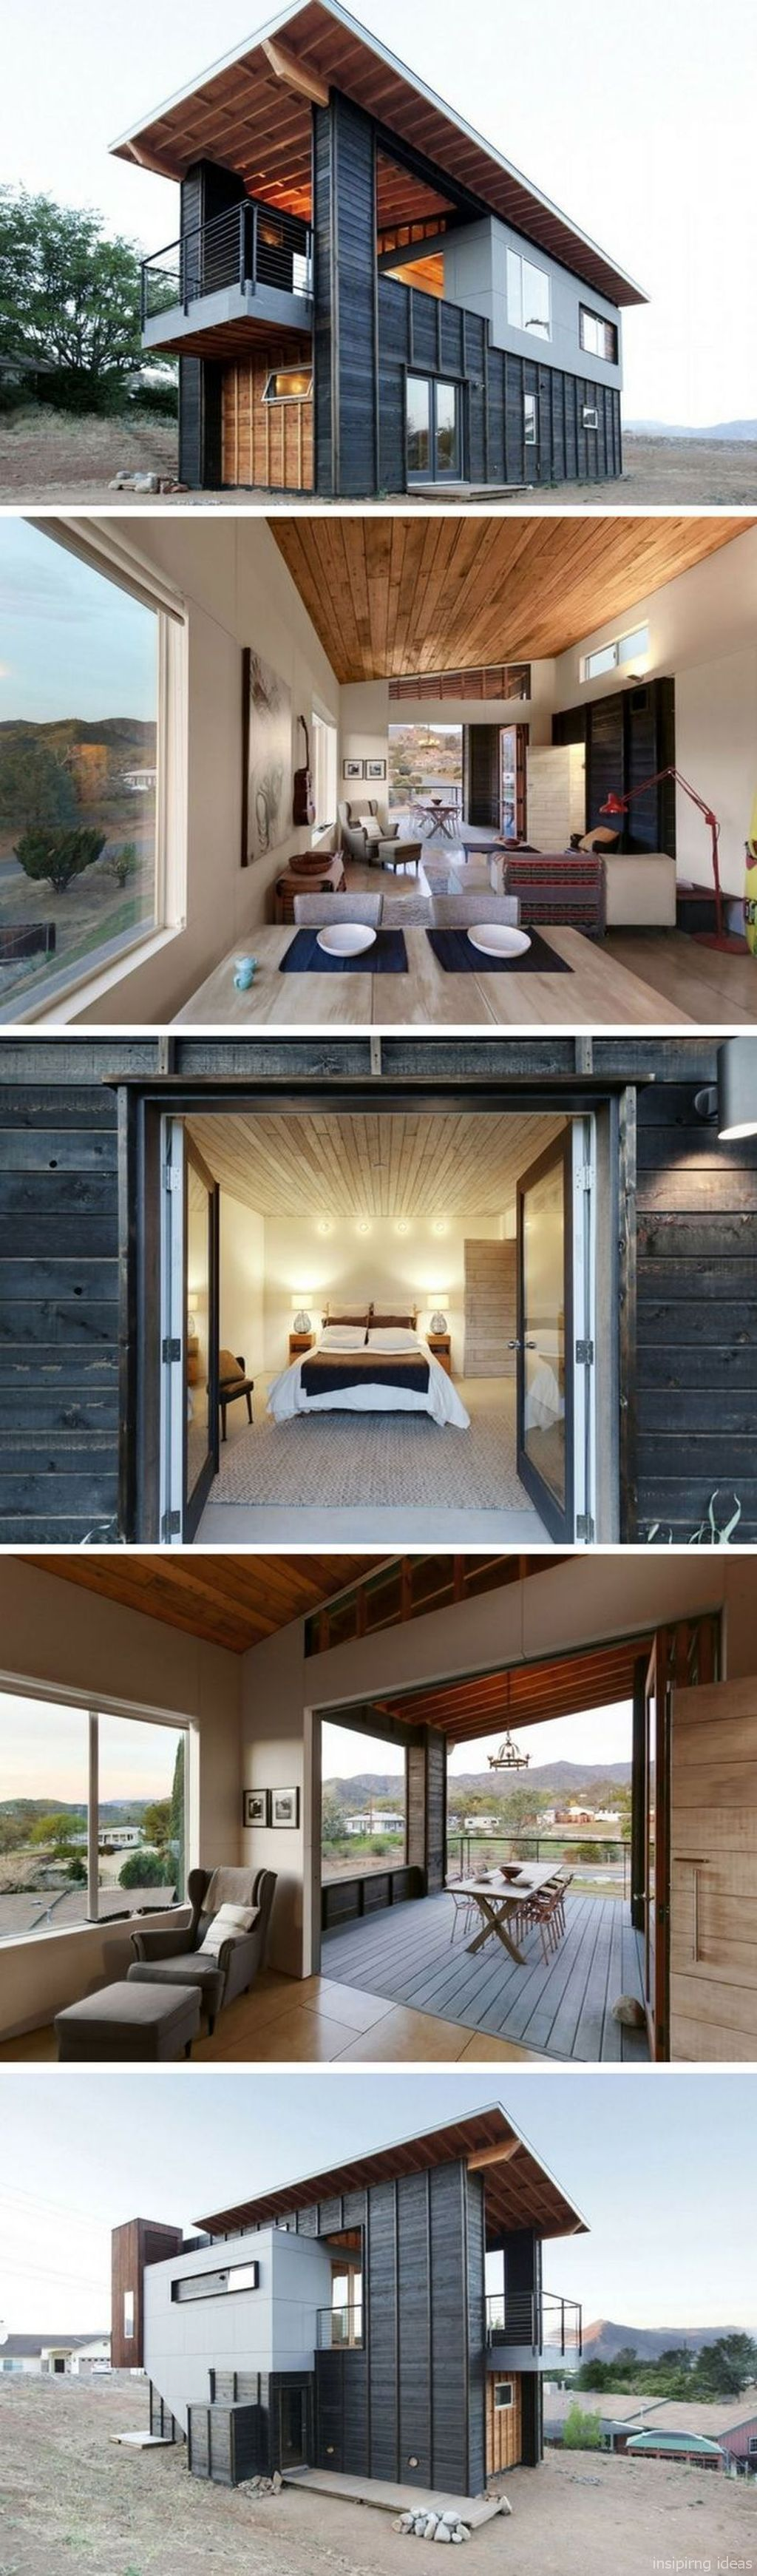 Modern Container House Design Ideas 35 Building A Container Home Container House Container House Design